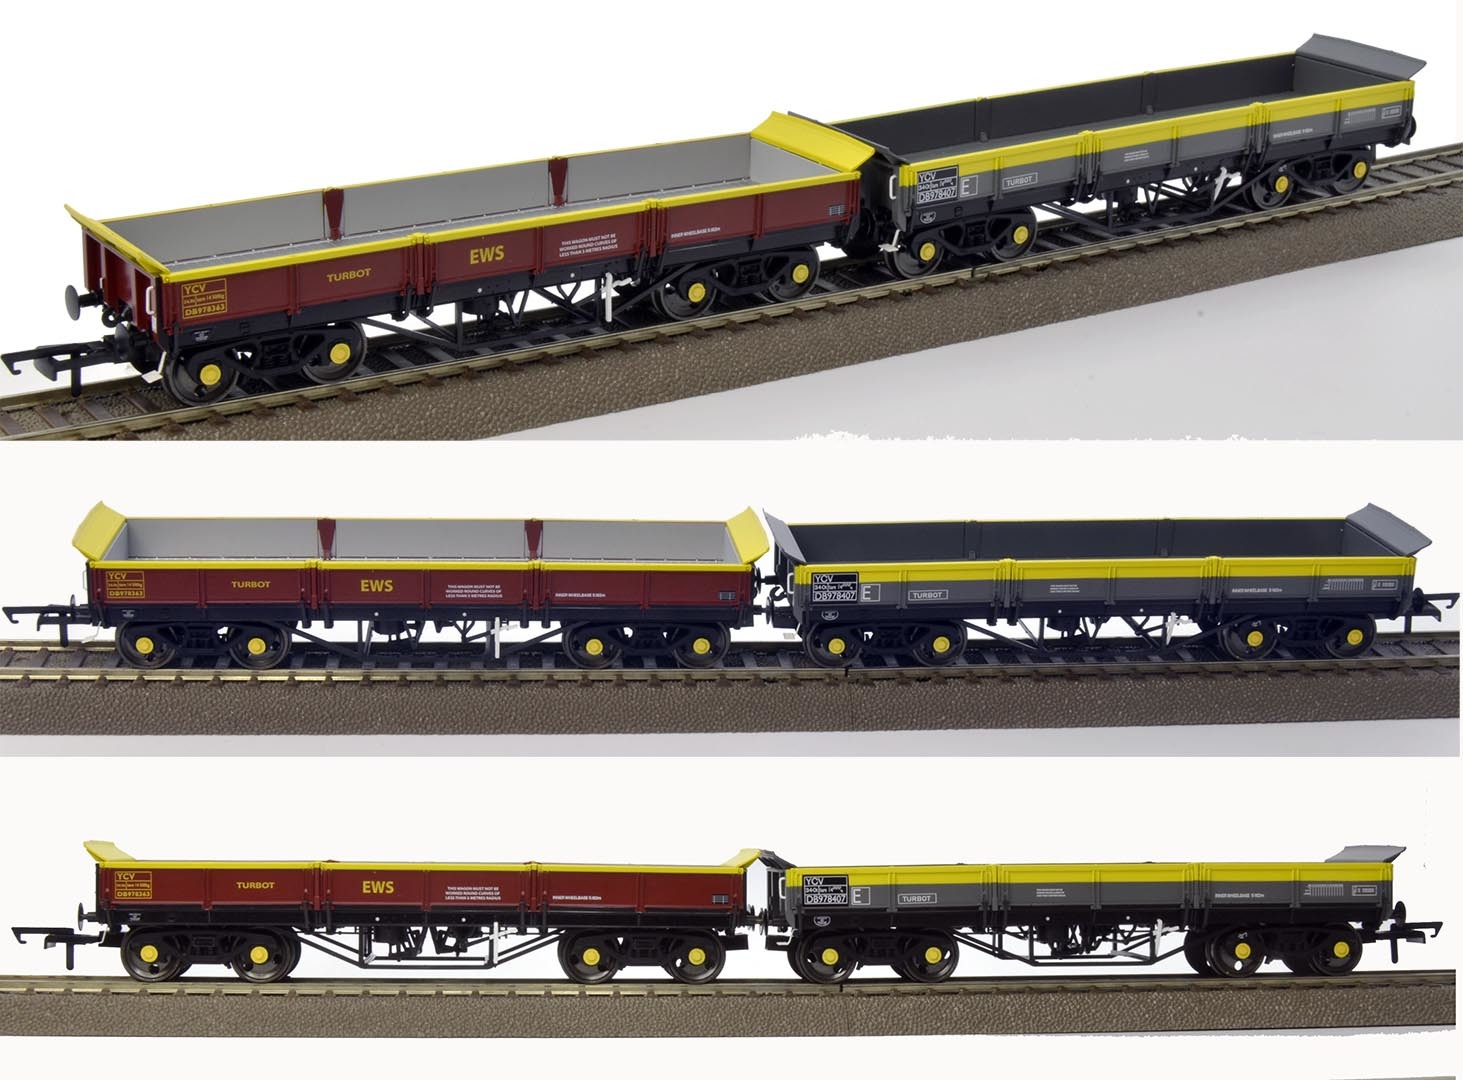 Dapol OO gauge YCV Turbots (EWS & 'Dutch')